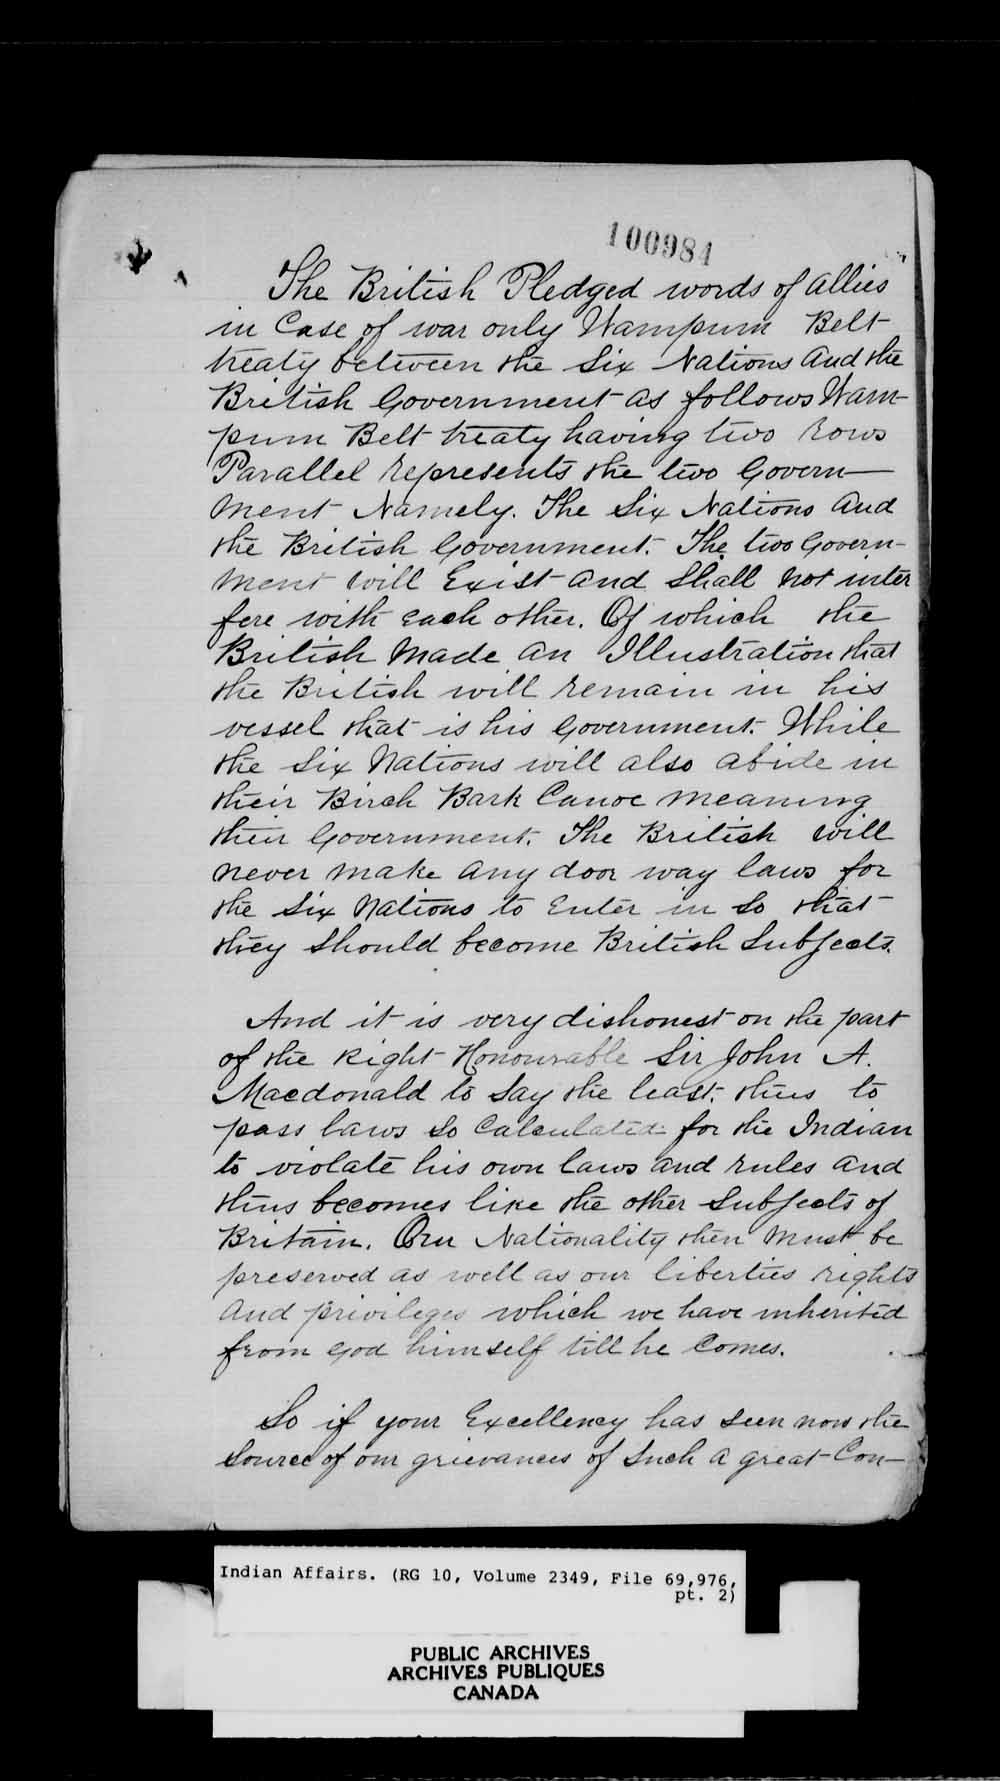 A black-and-white reproduction of a handwritten petition addressed to His Excellency the Governor General of the Dominion of Canada, the Right Honourable Lord Stanley.